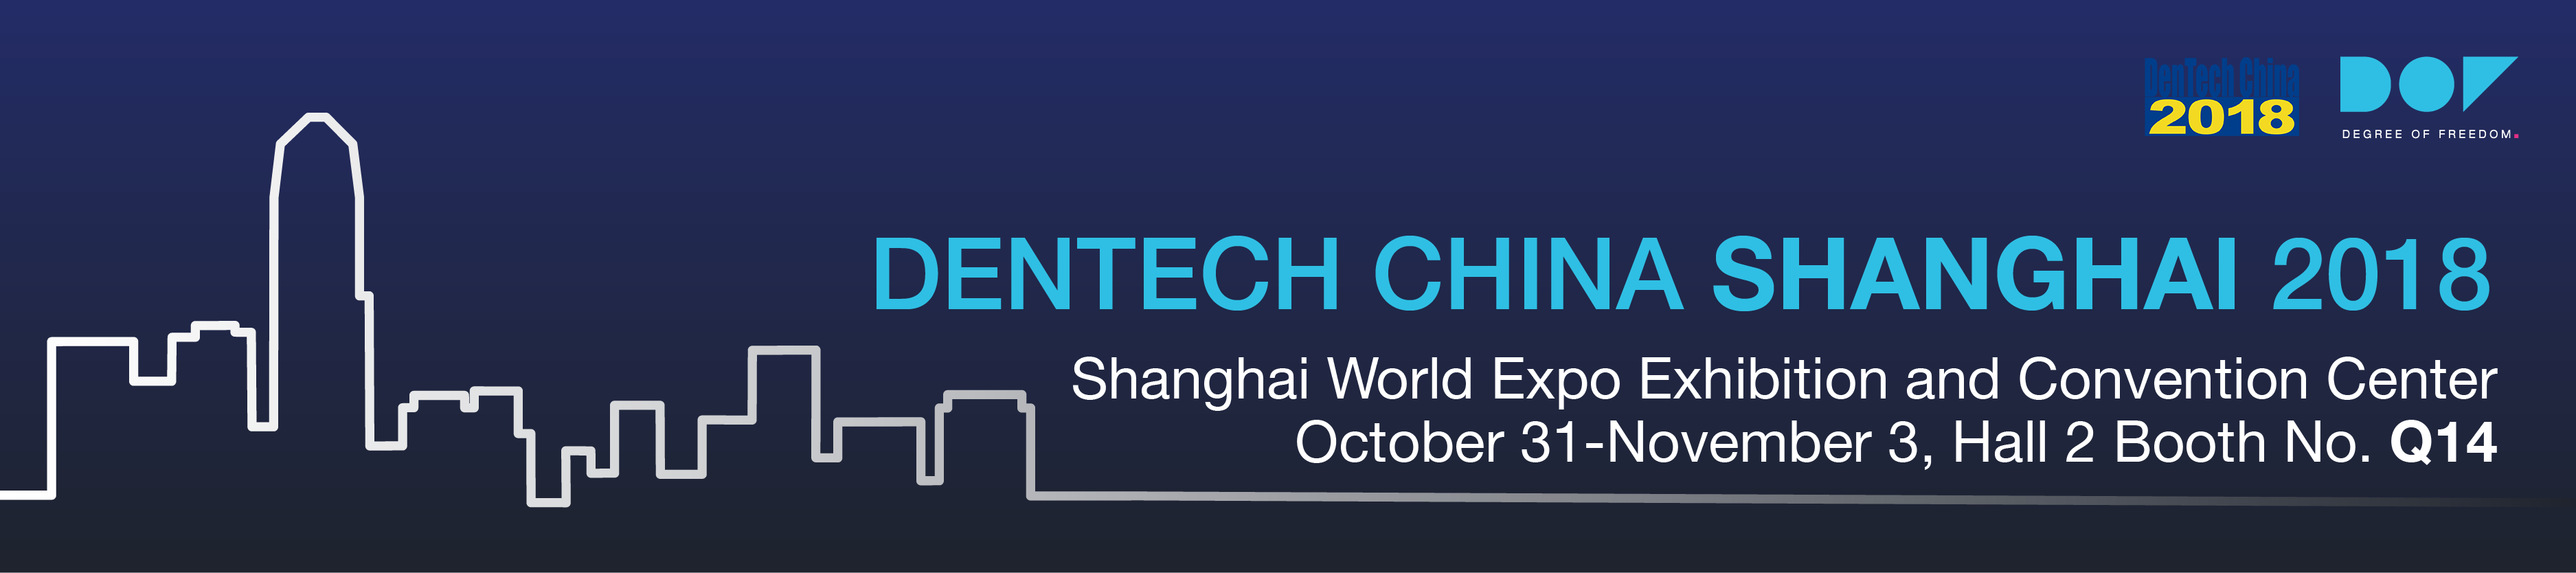 DenTech China 2018 in Shanghai, China